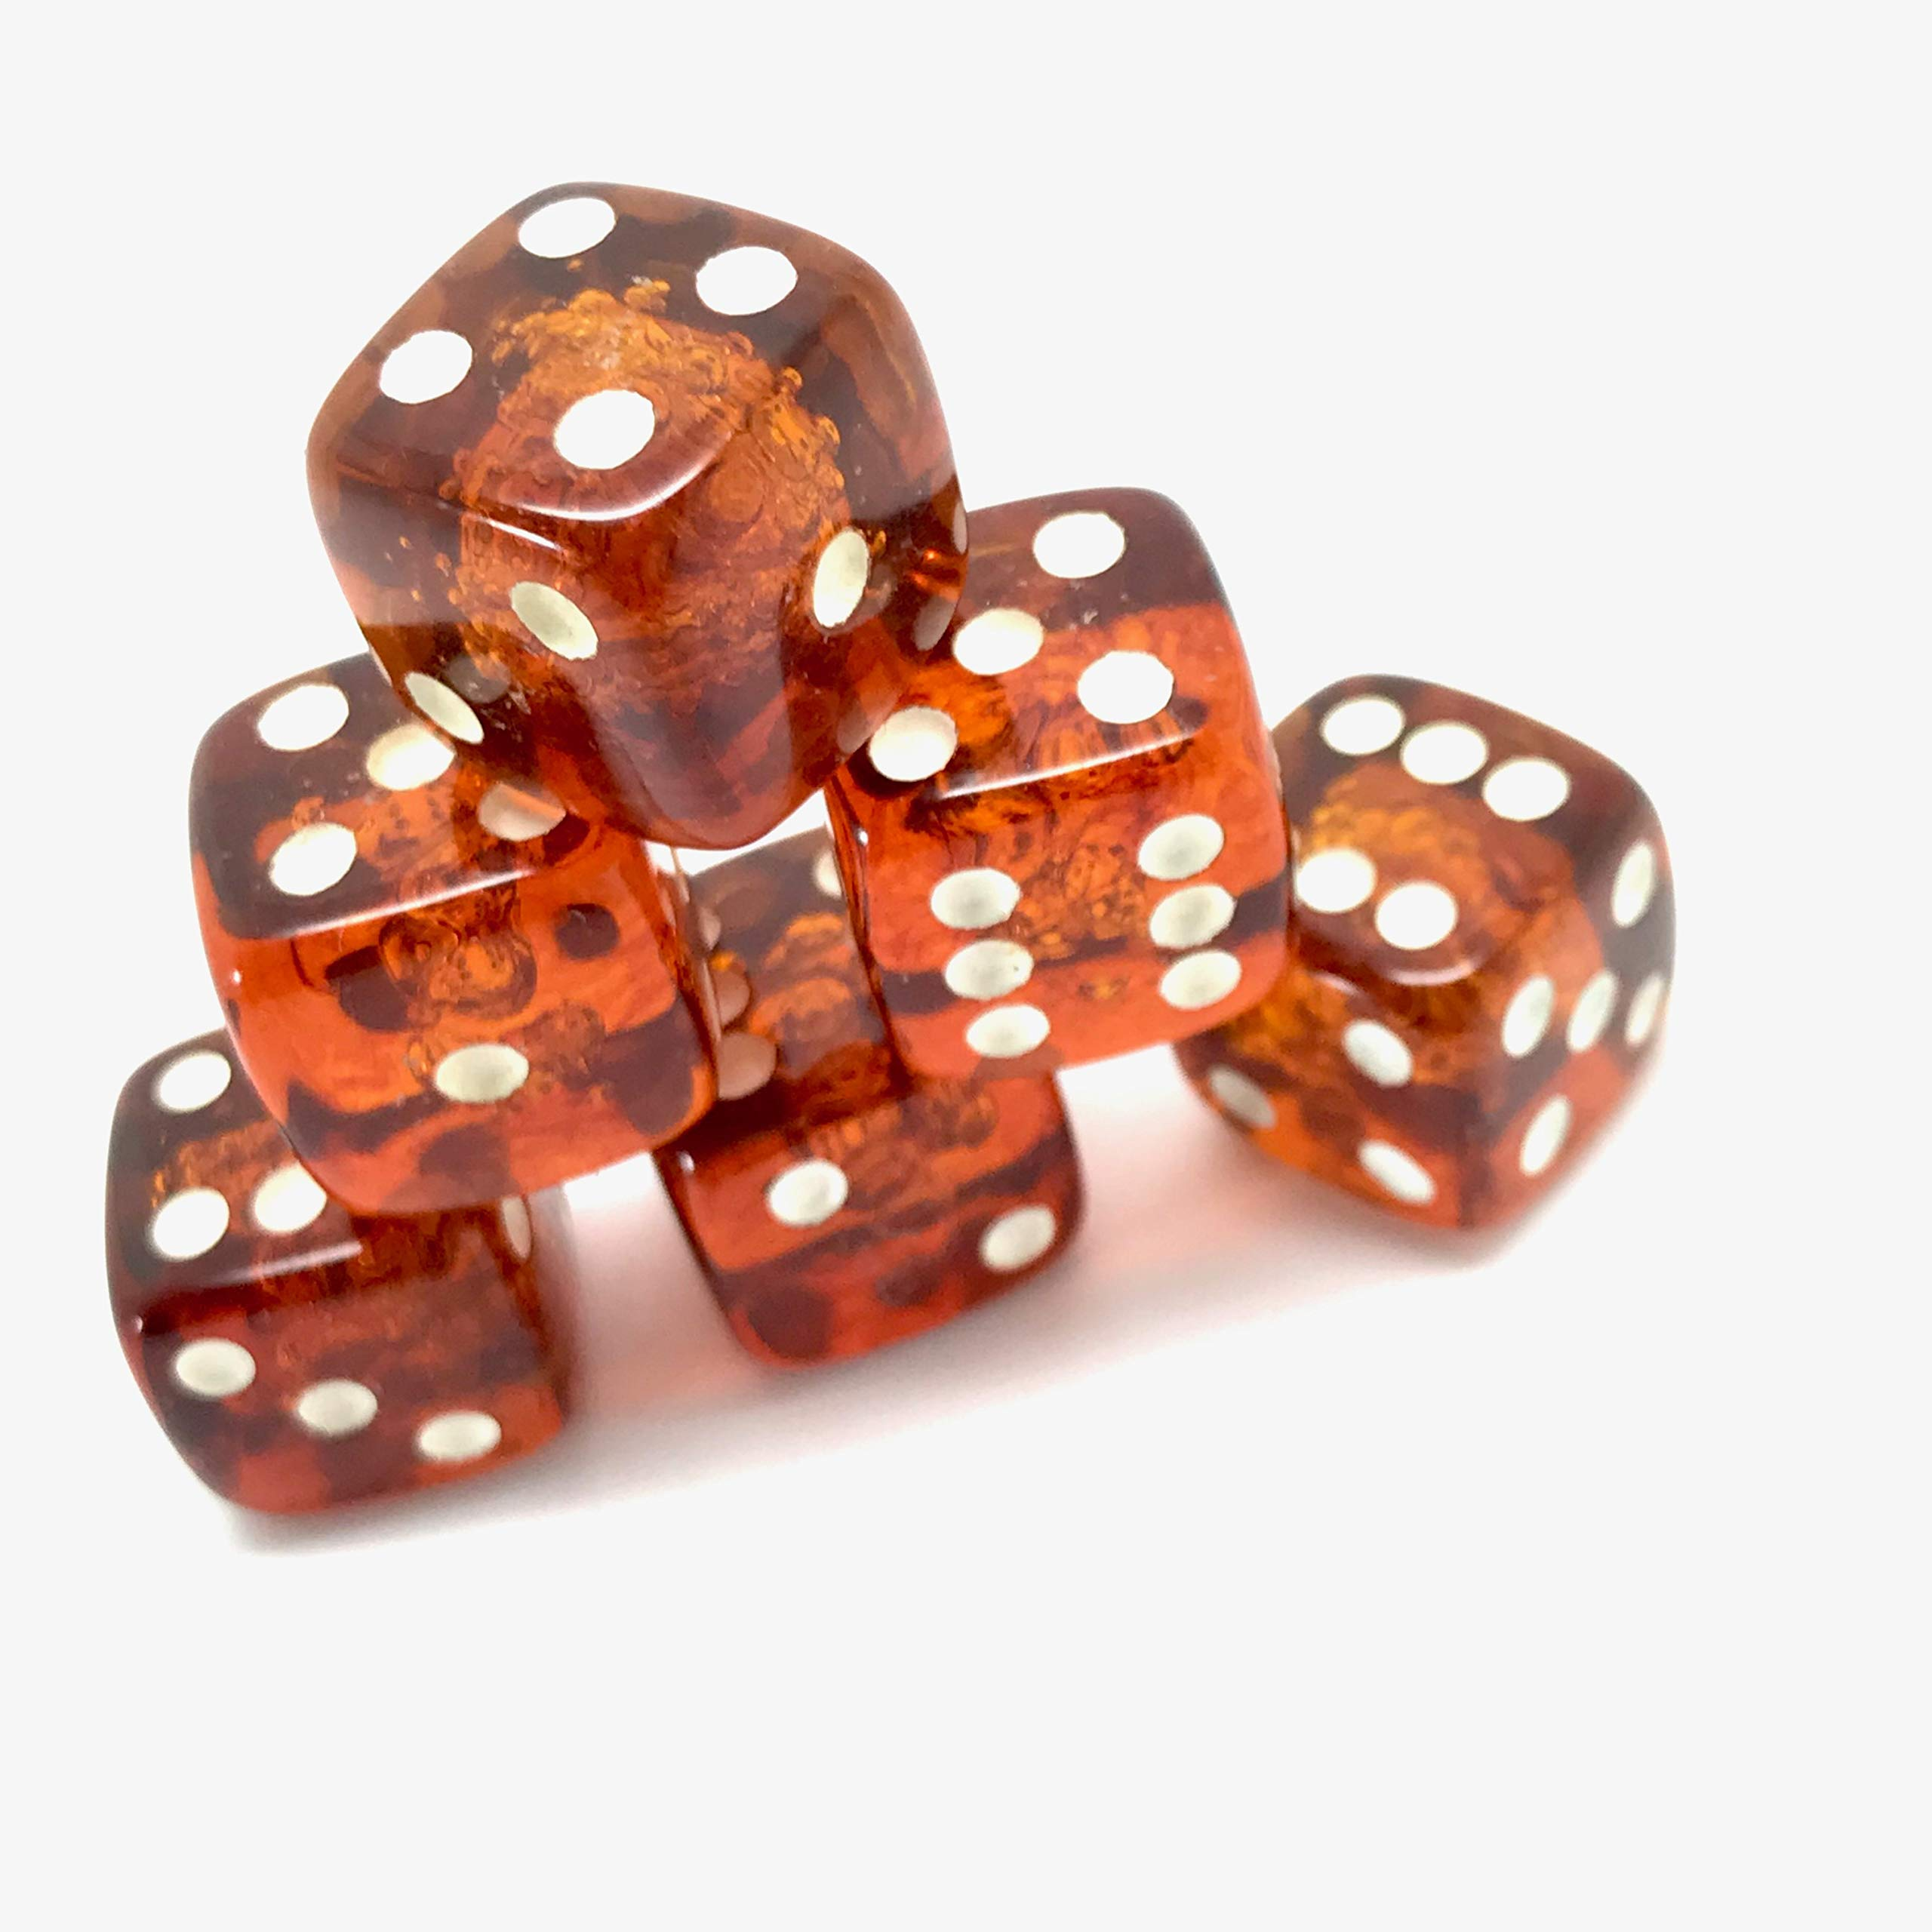 x6 Proper size Amber Dice set for Board games and Gambling by Generic (Image #2)